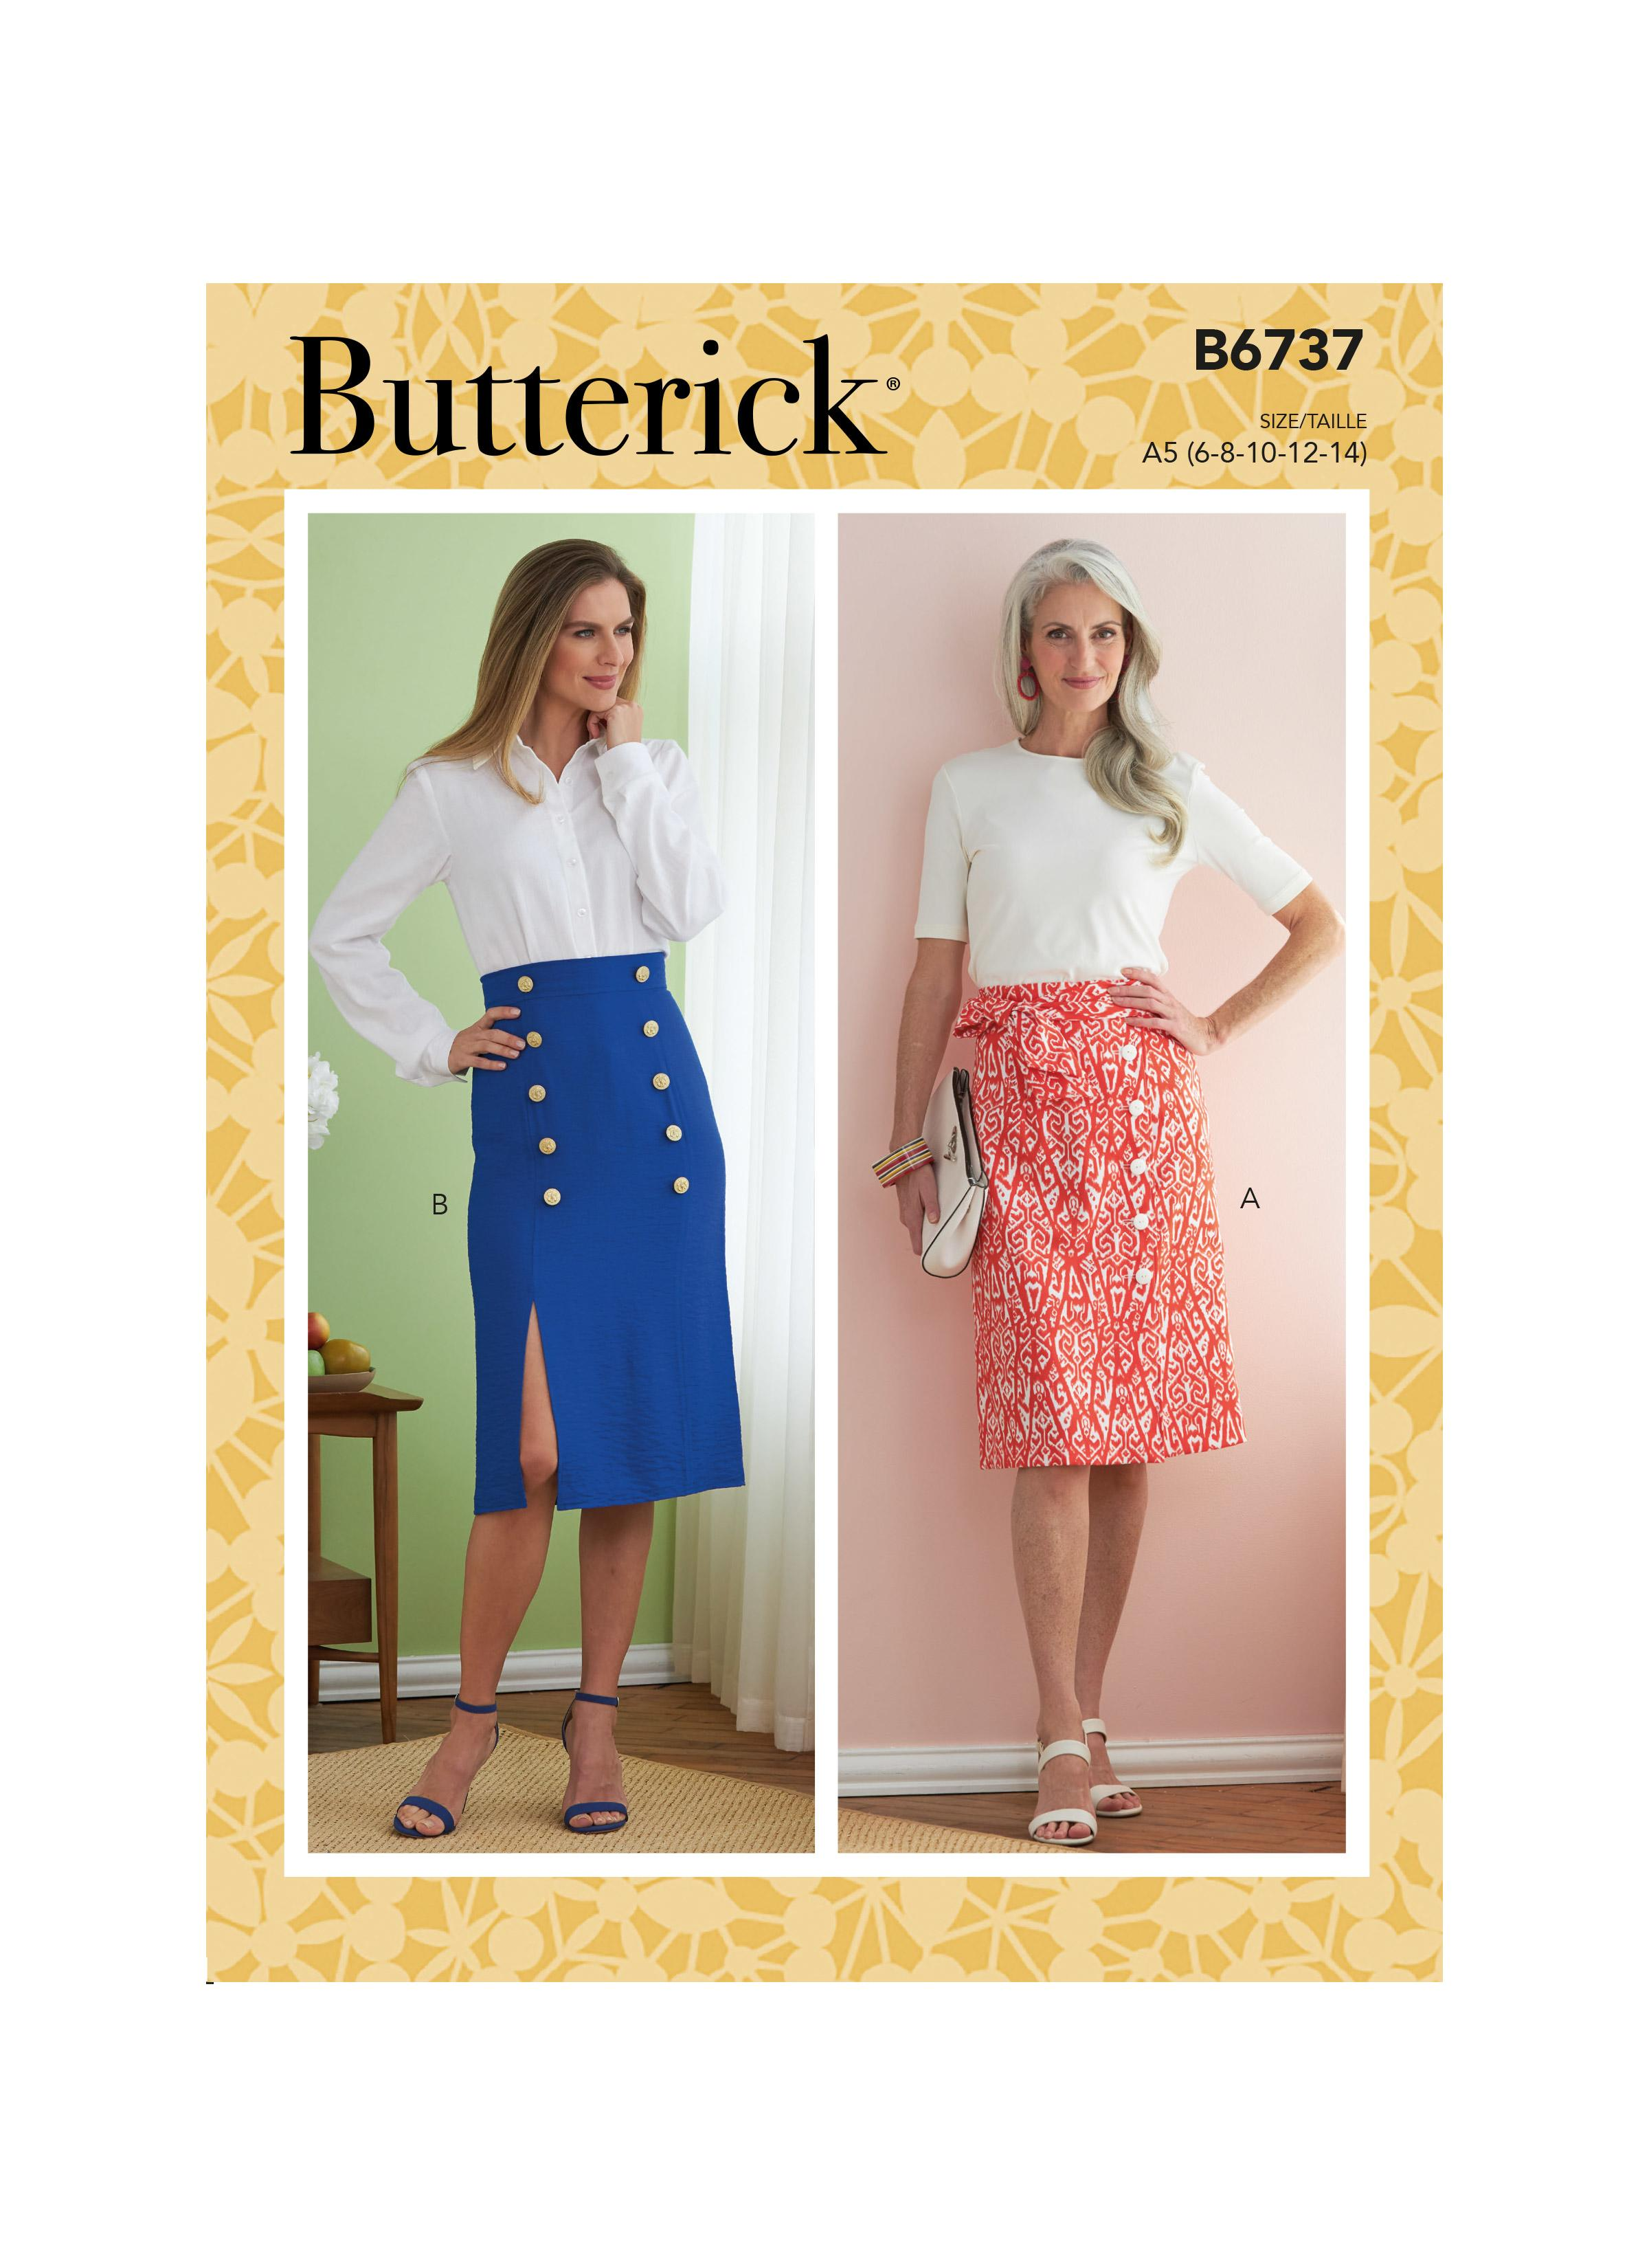 Butterick B6737 Misses' Skirts